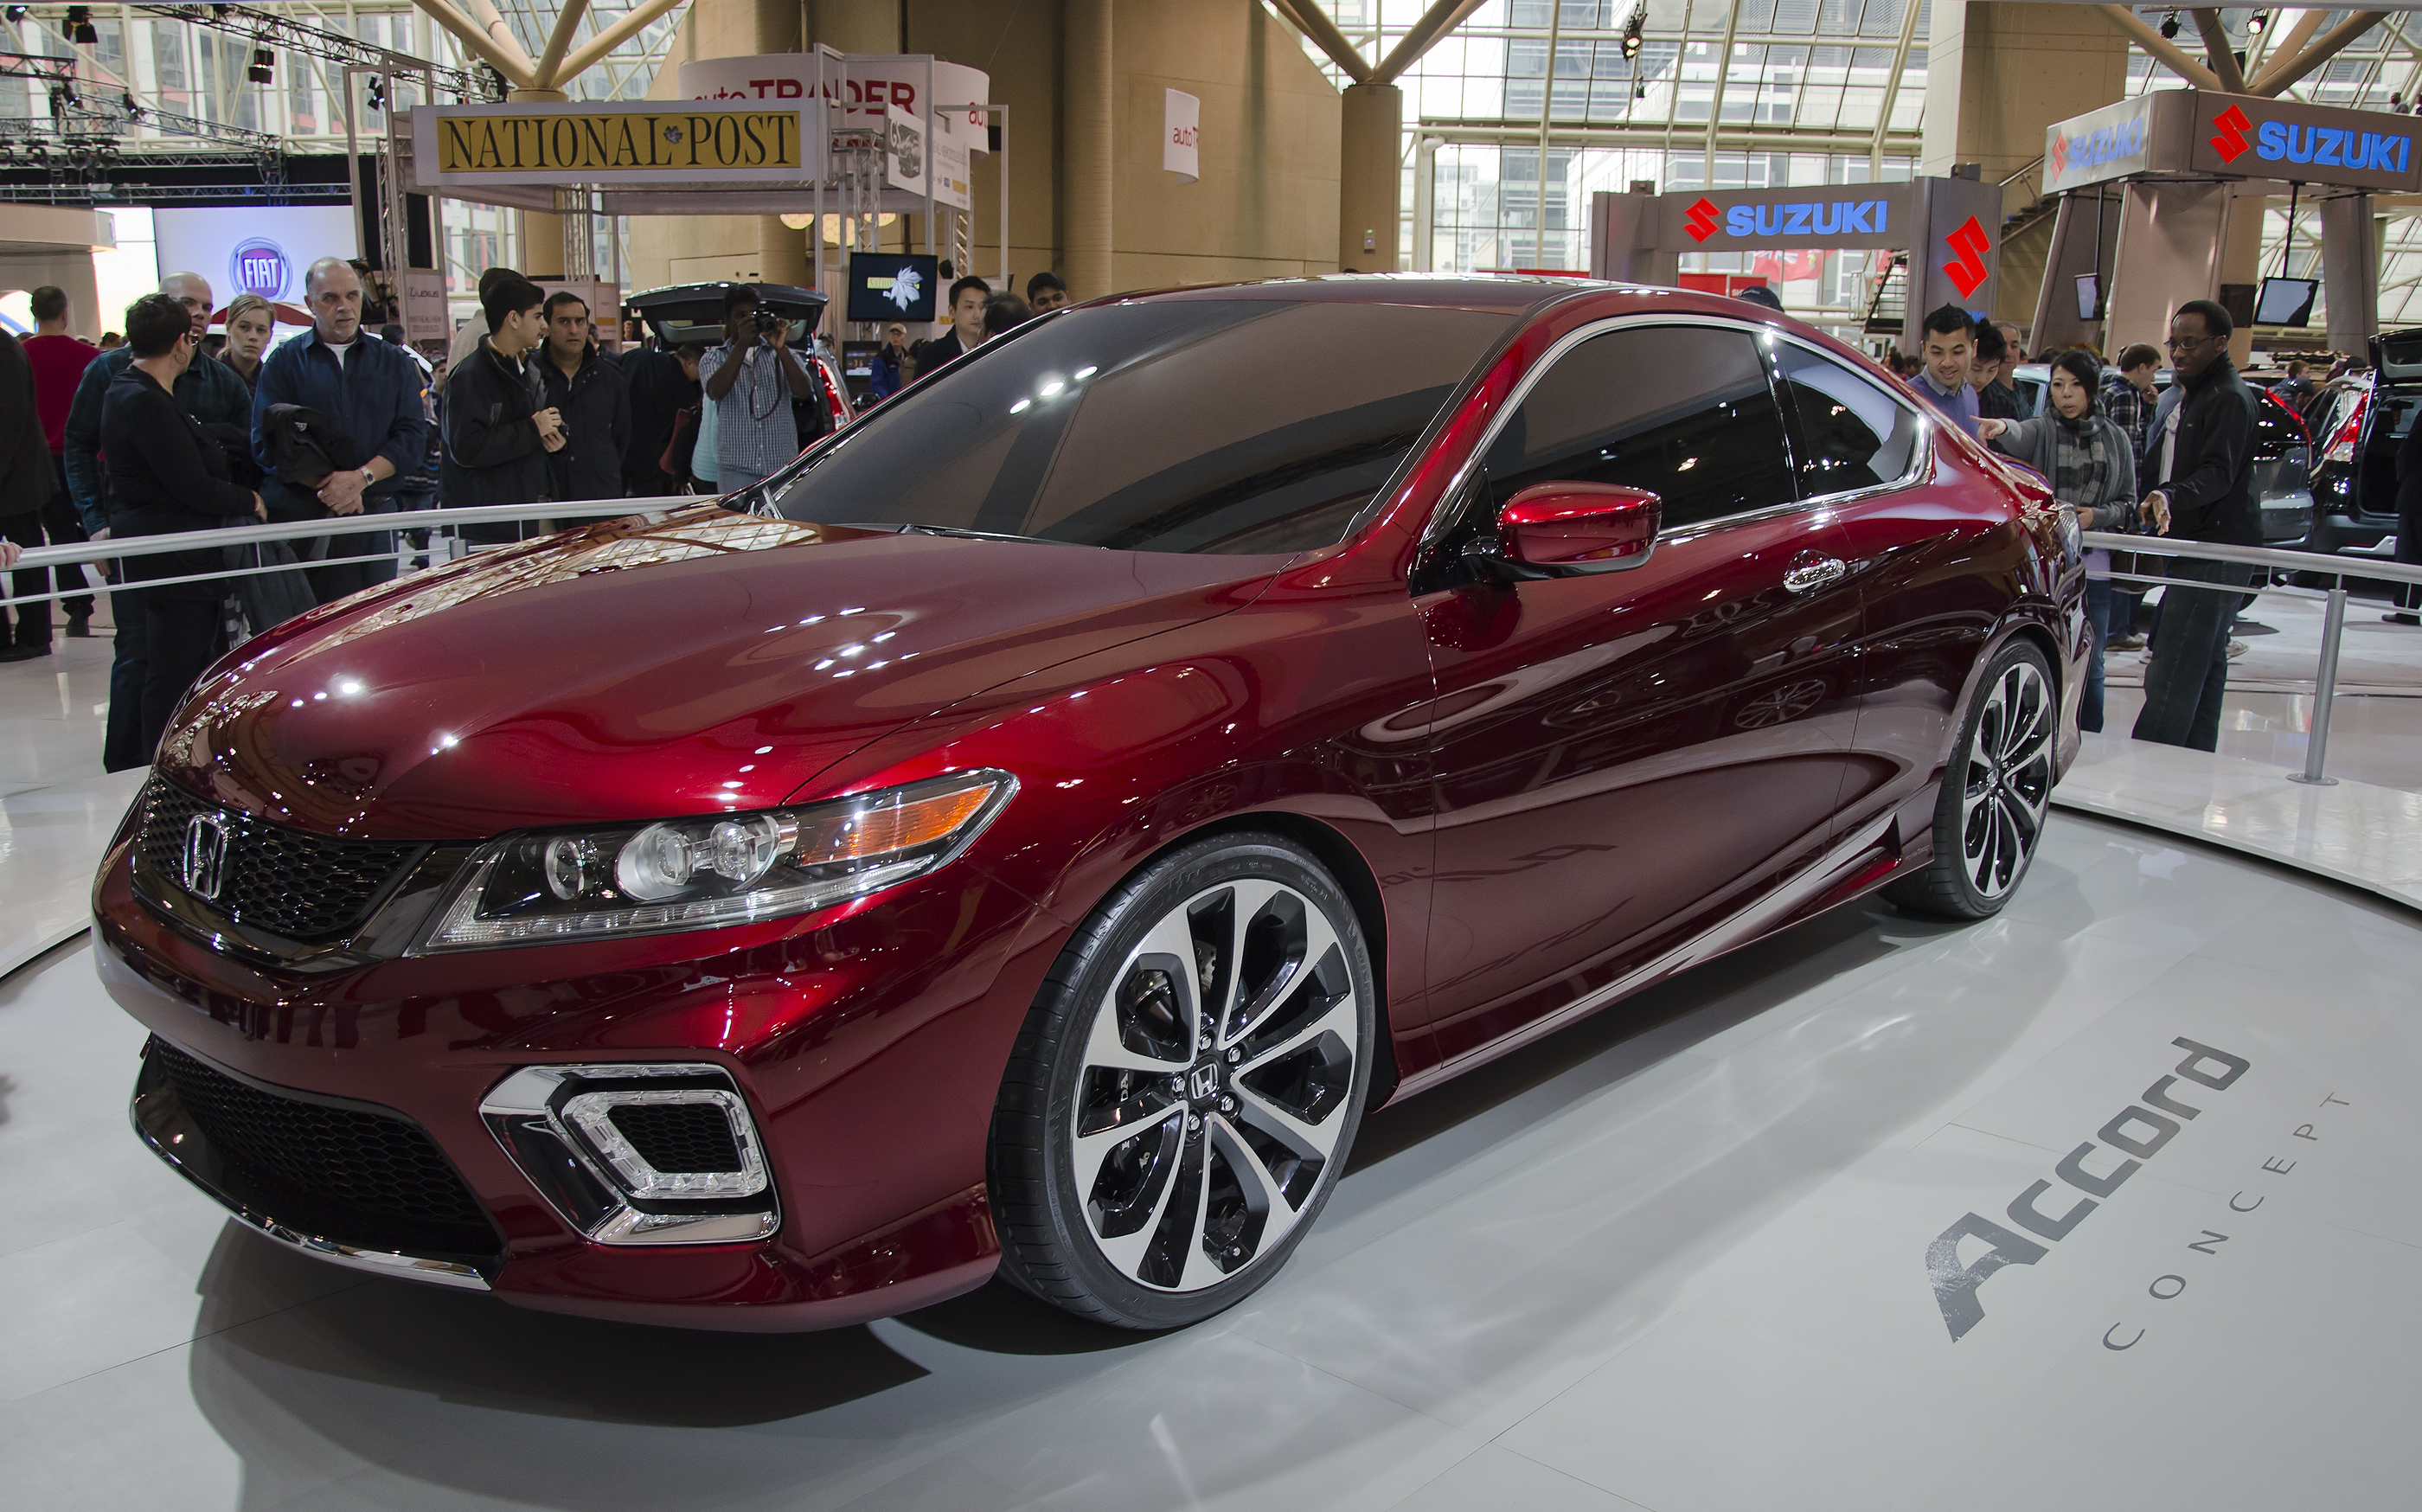 HONDA ACCORD 2013 BY RYELO357